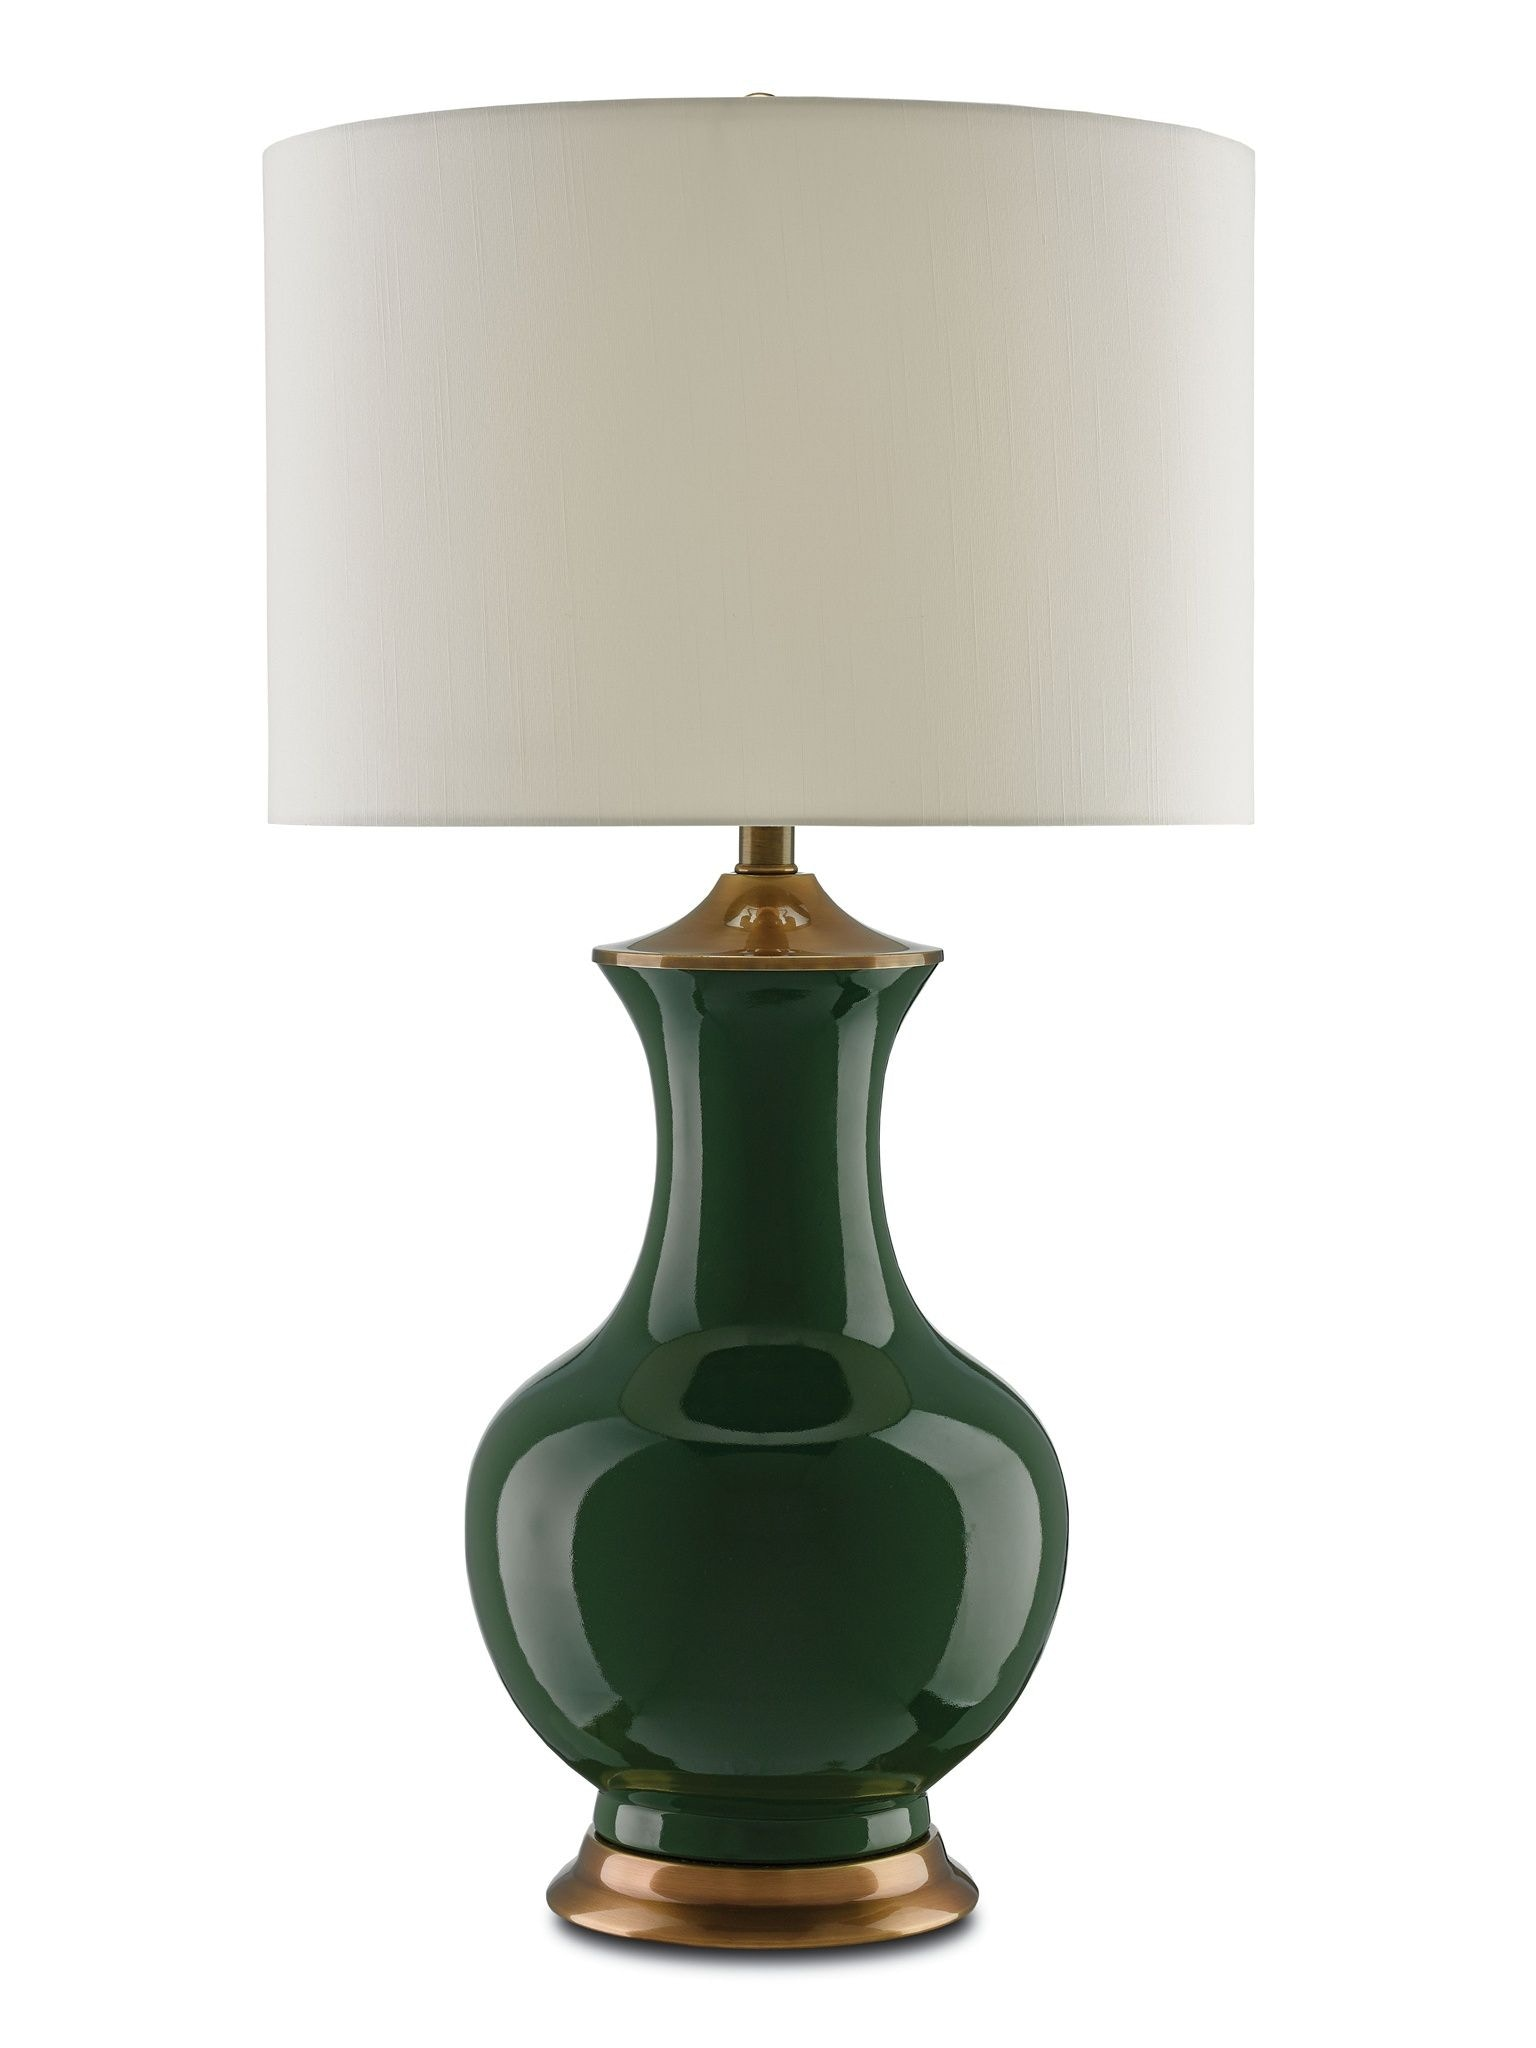 Captivating Currey And Company Table U0026 Floor Lamps Lilou Table Lamp, Green 6000 0022 Design Inspirations